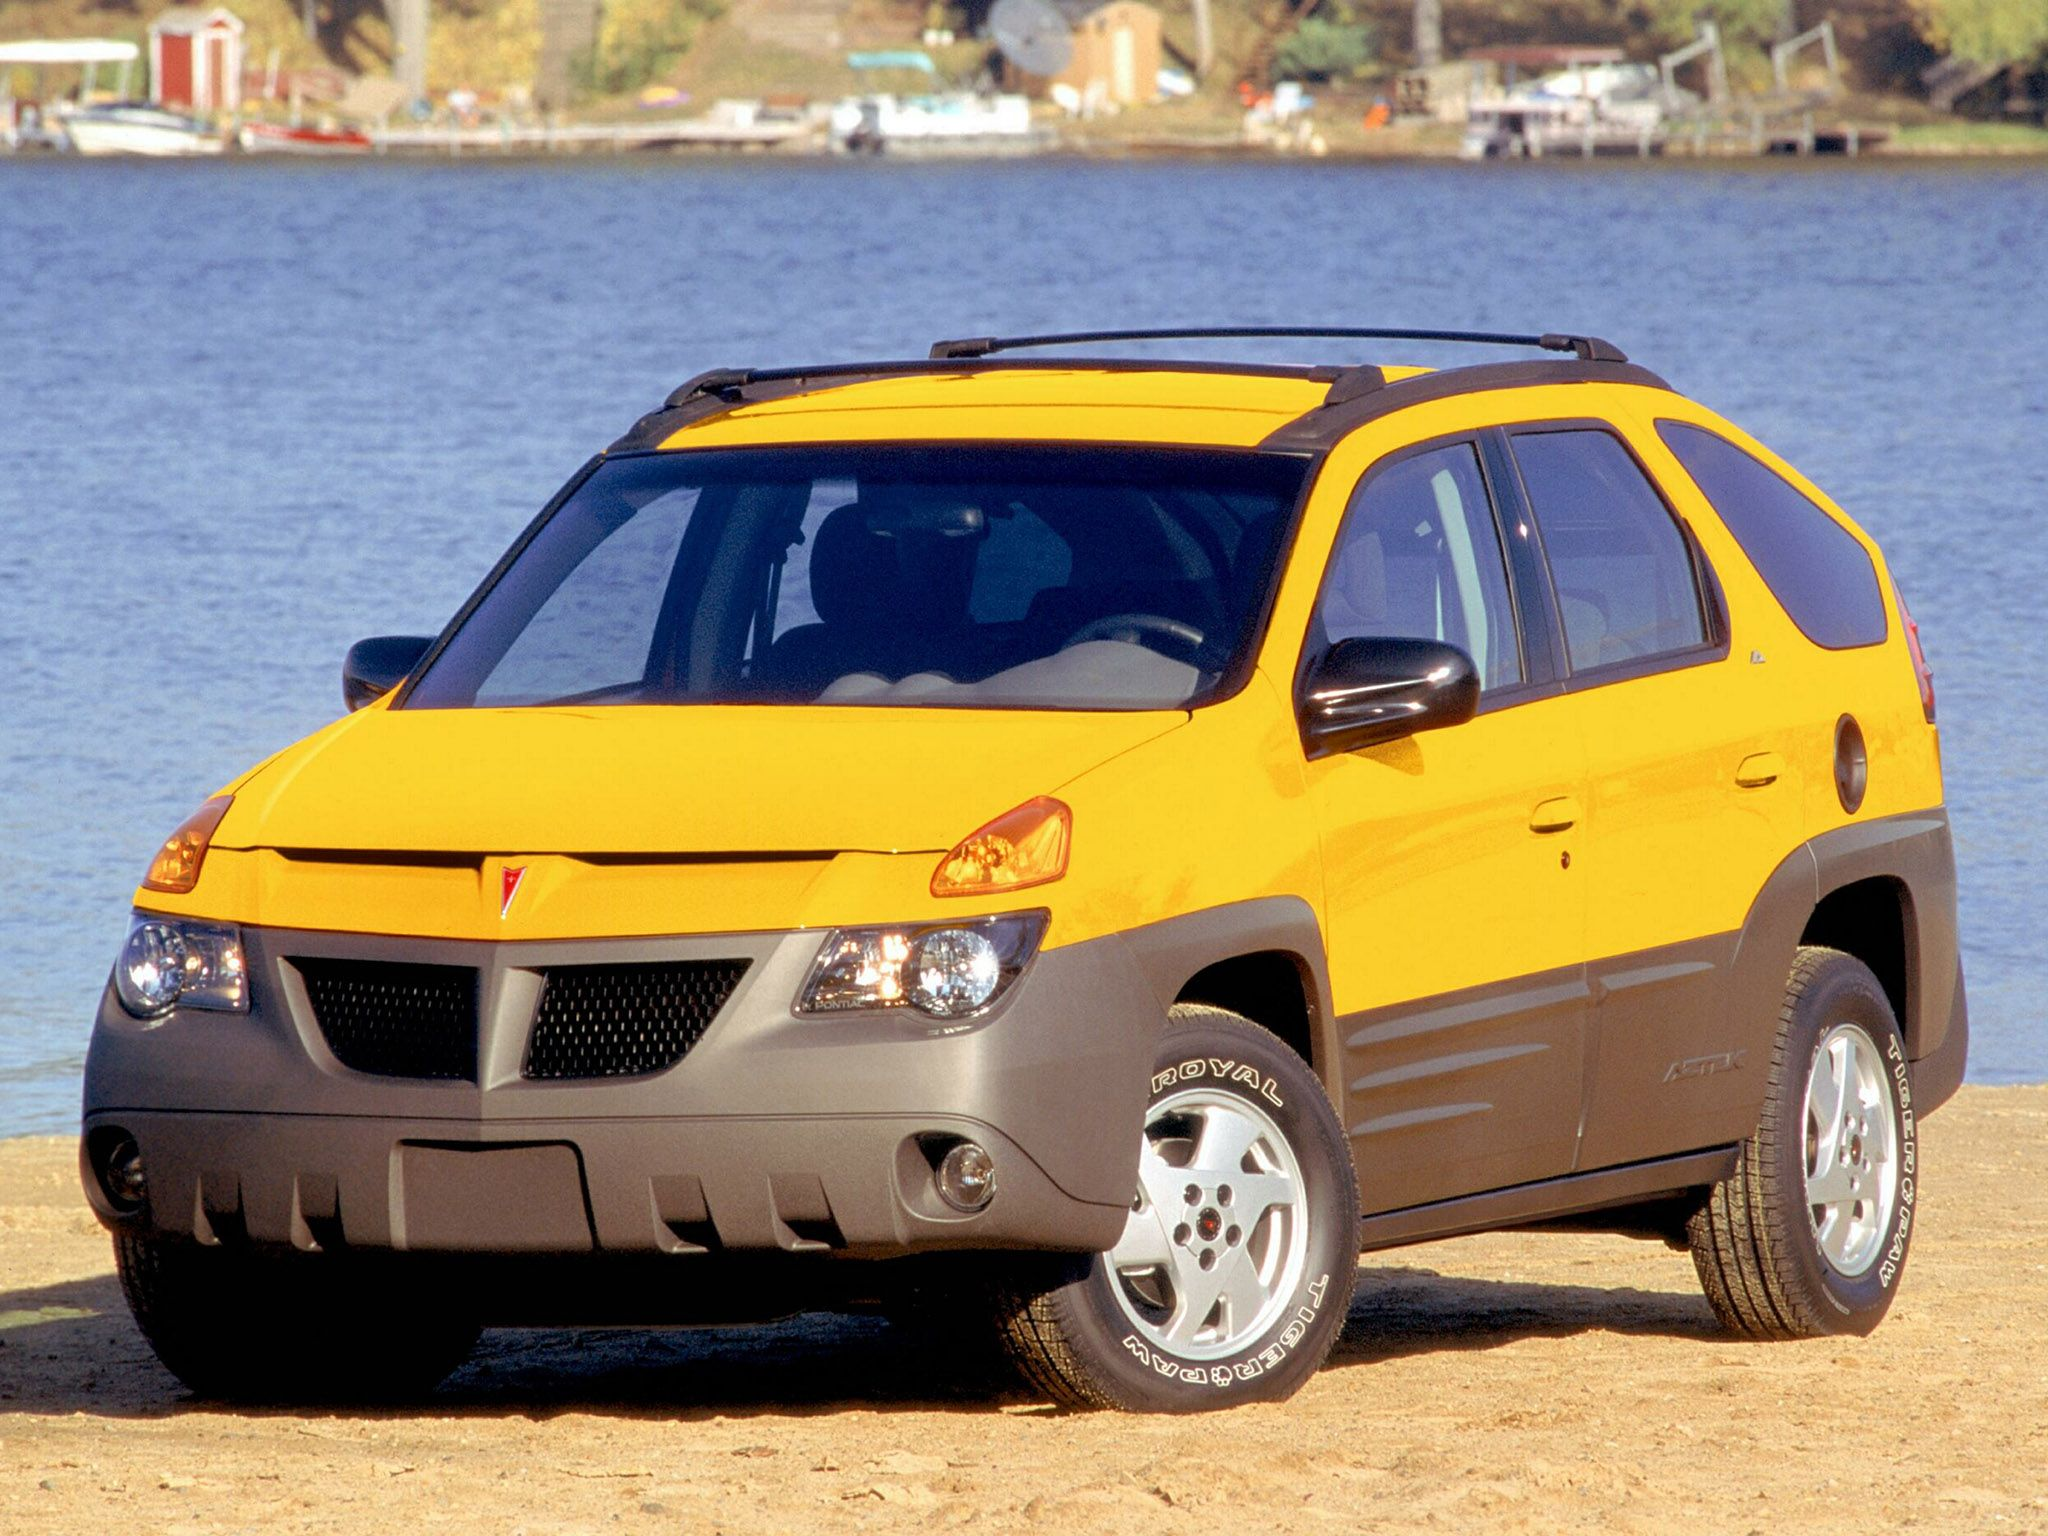 Pontiac aztek 2001 gm wanted to create a hip cool suv for young people